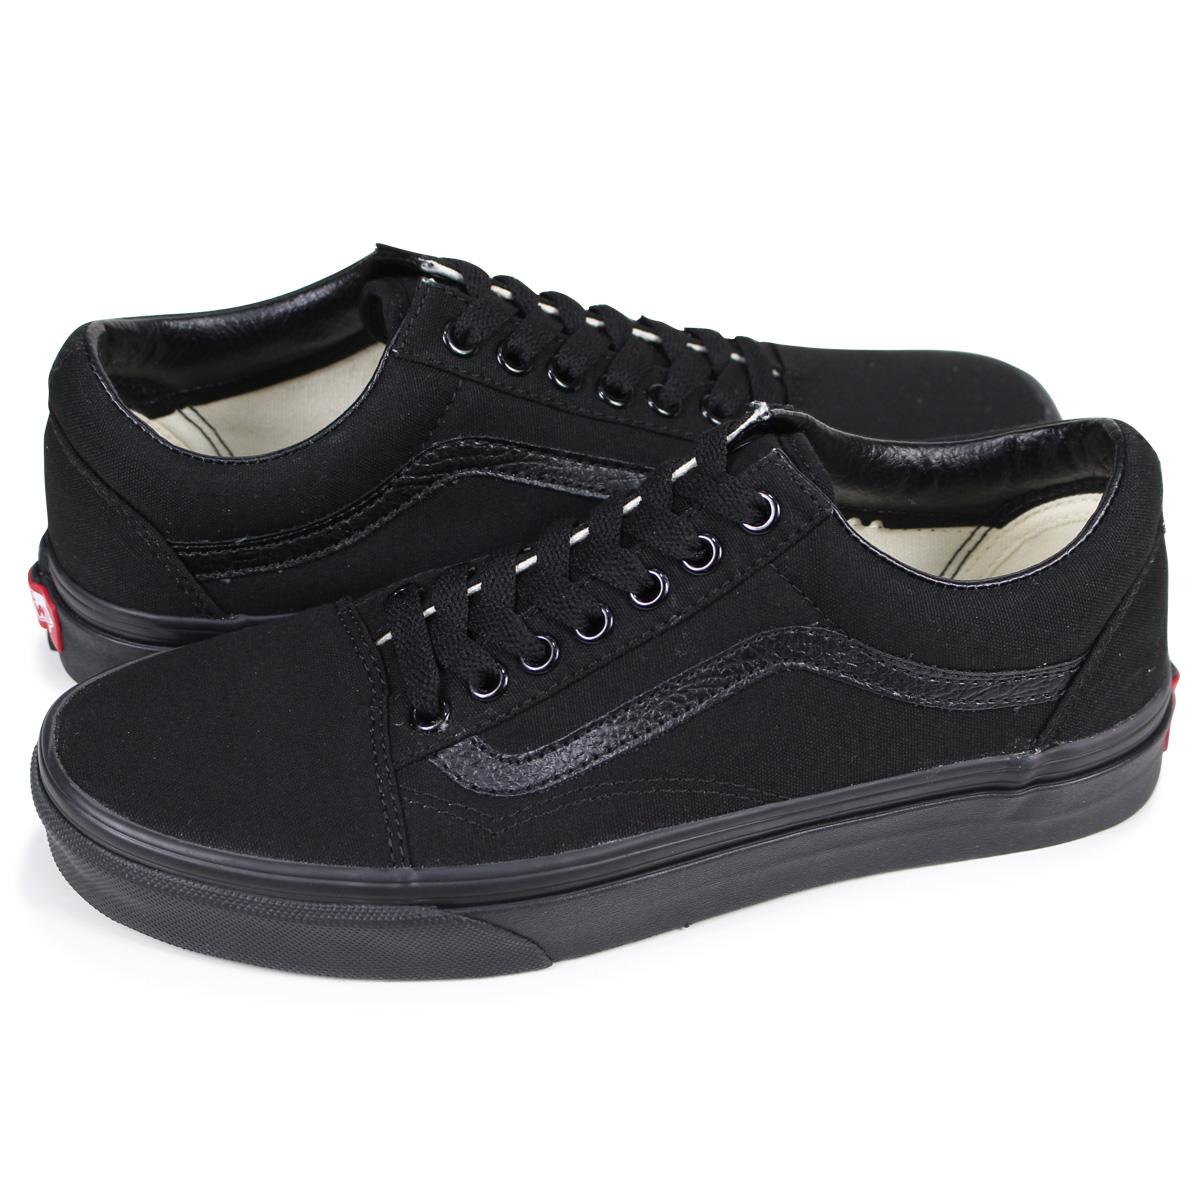 d5a52cca2d Whats up Sports  VANS OLD SKOOL old school sneakers men gap Dis vans ...